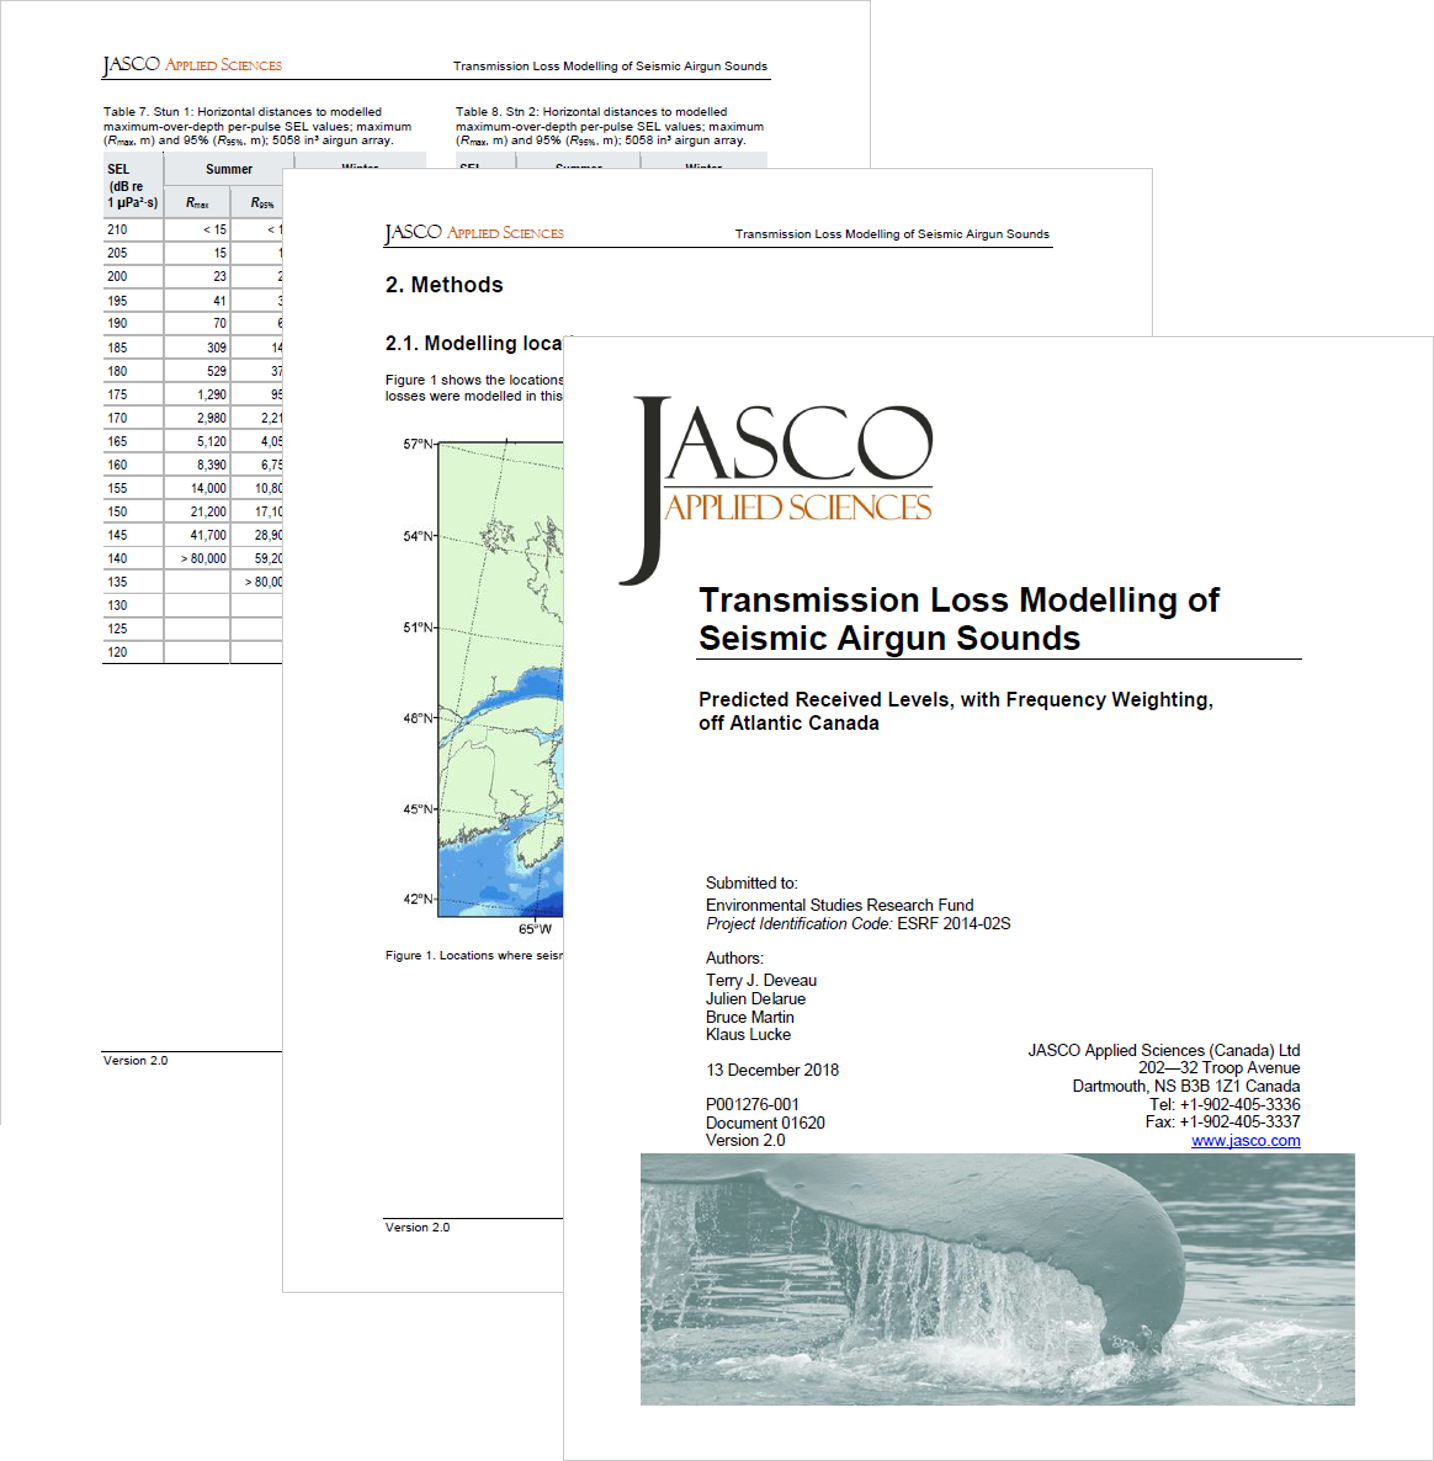 Transmission Loss Modelling of Seismic Airgun Sounds: Predicted Received Levels, with Frequency Weighting, off Atlantic Canada (PDF, 3 MB) - Terry Deveau, Julien Delarue, Bruce Martin, Klaus LuckeEnvironmental Studies Research FundReport Number 217 (2018)